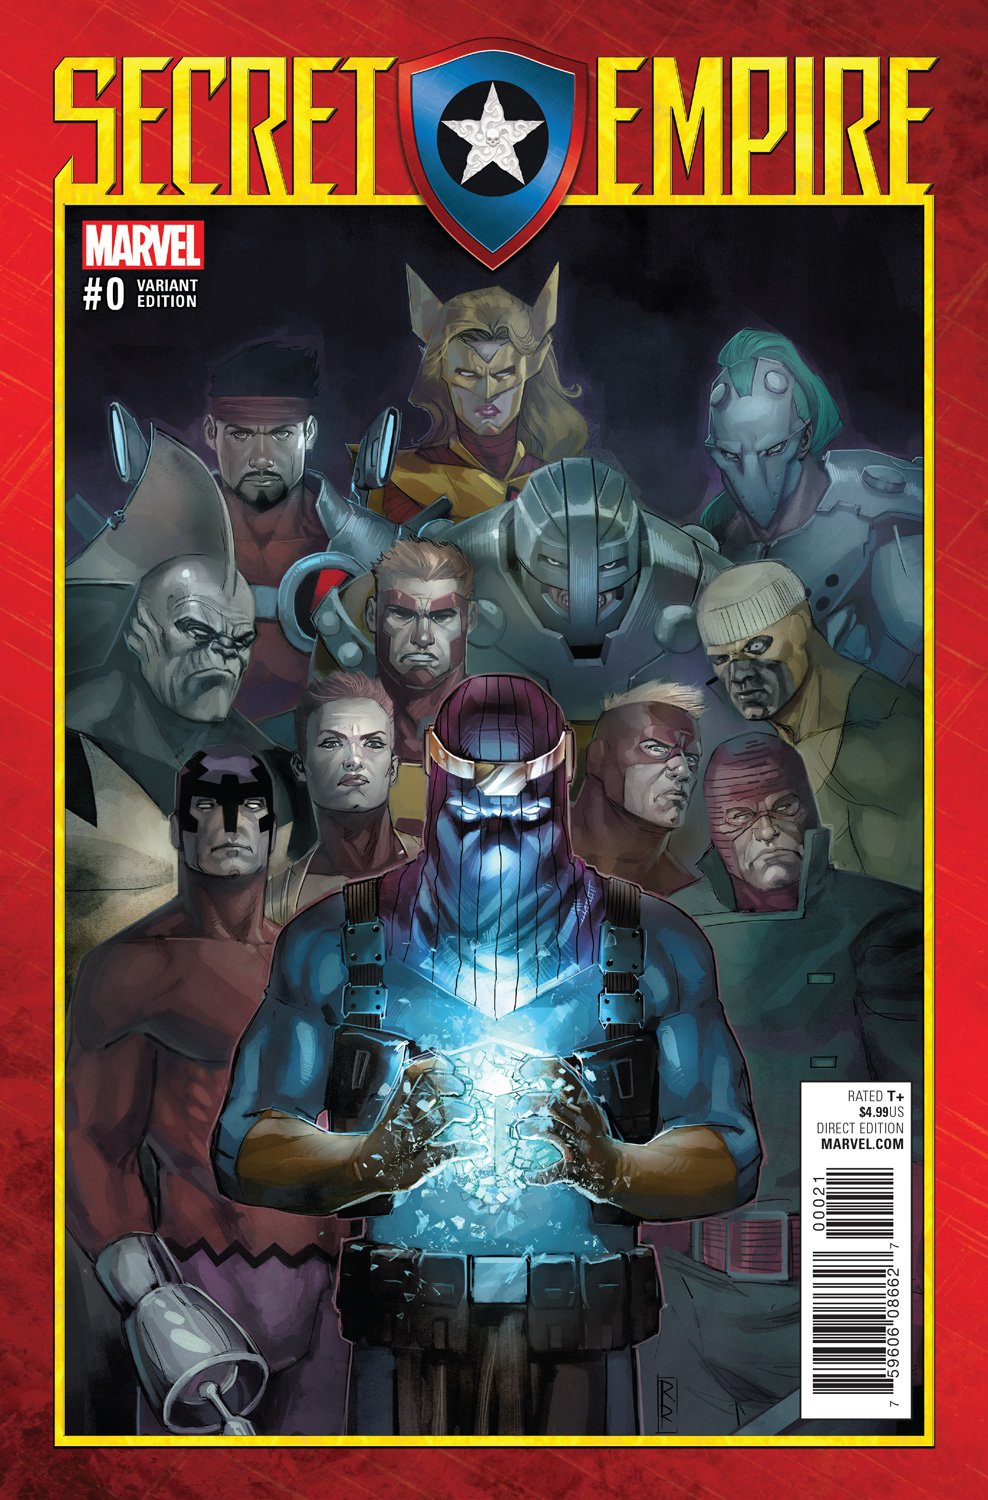 Secret Empire #0 Review